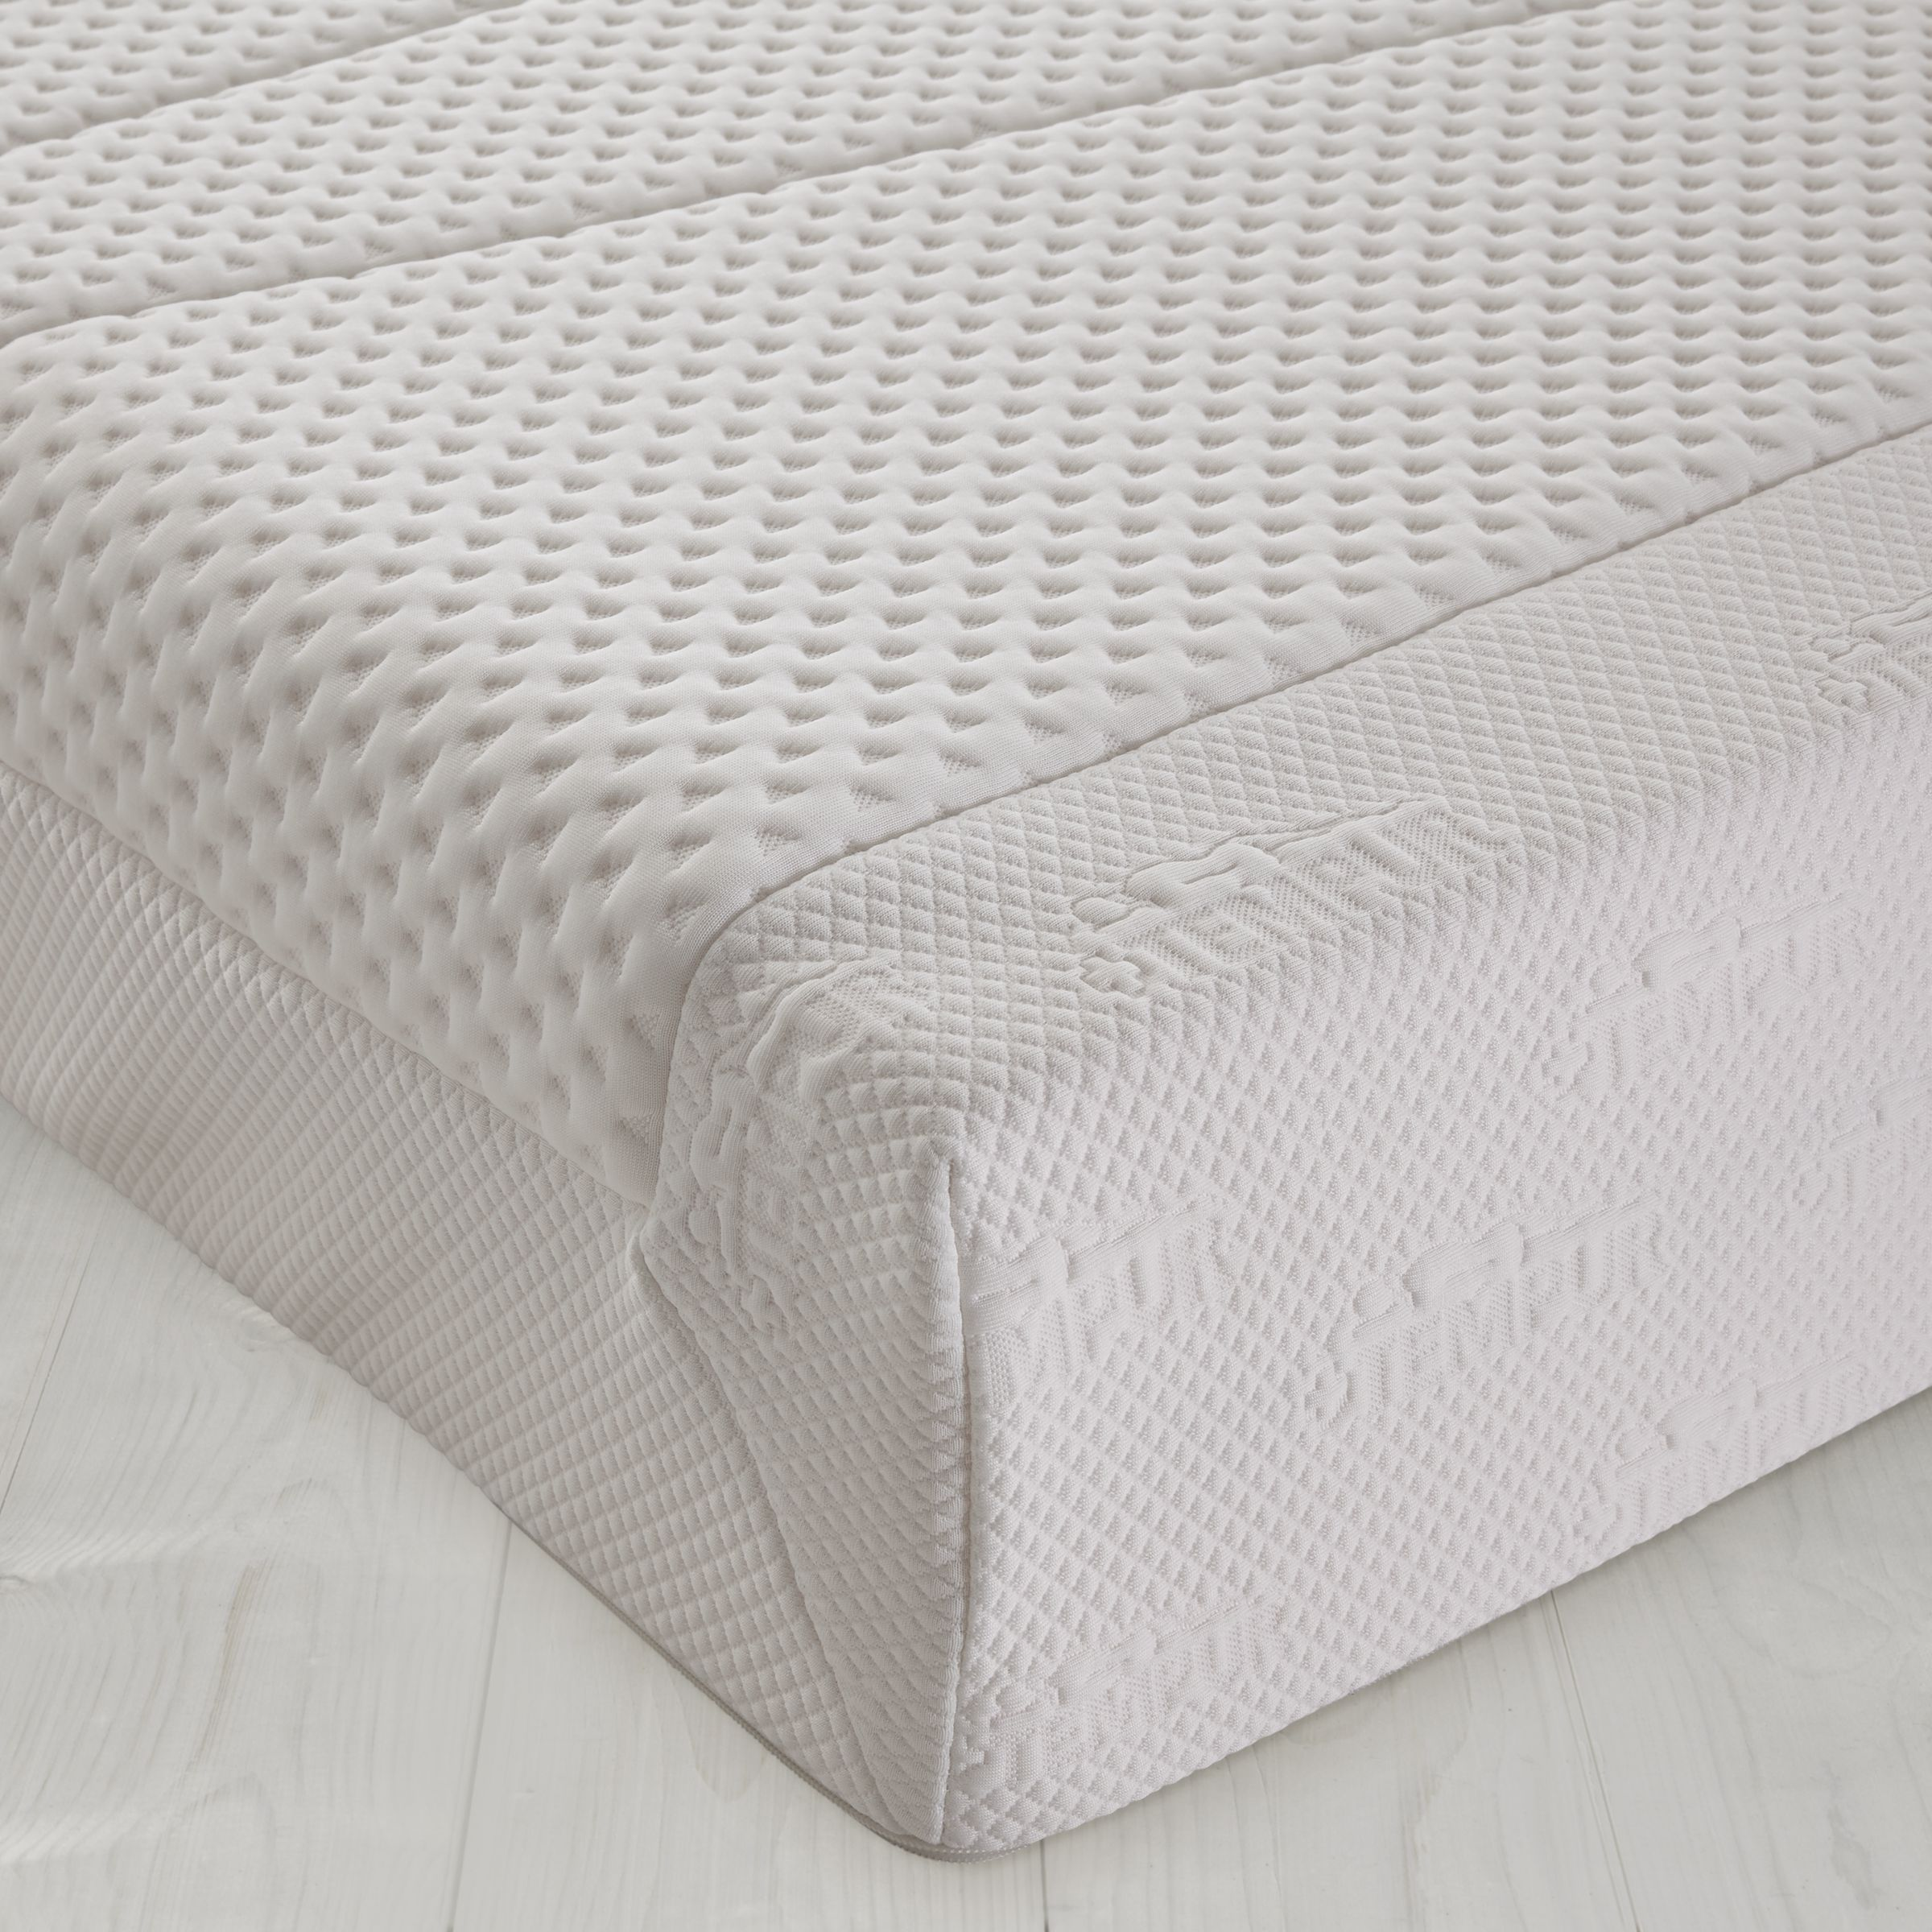 Tempur Original Deluxe 22 Mattress, Kingsize